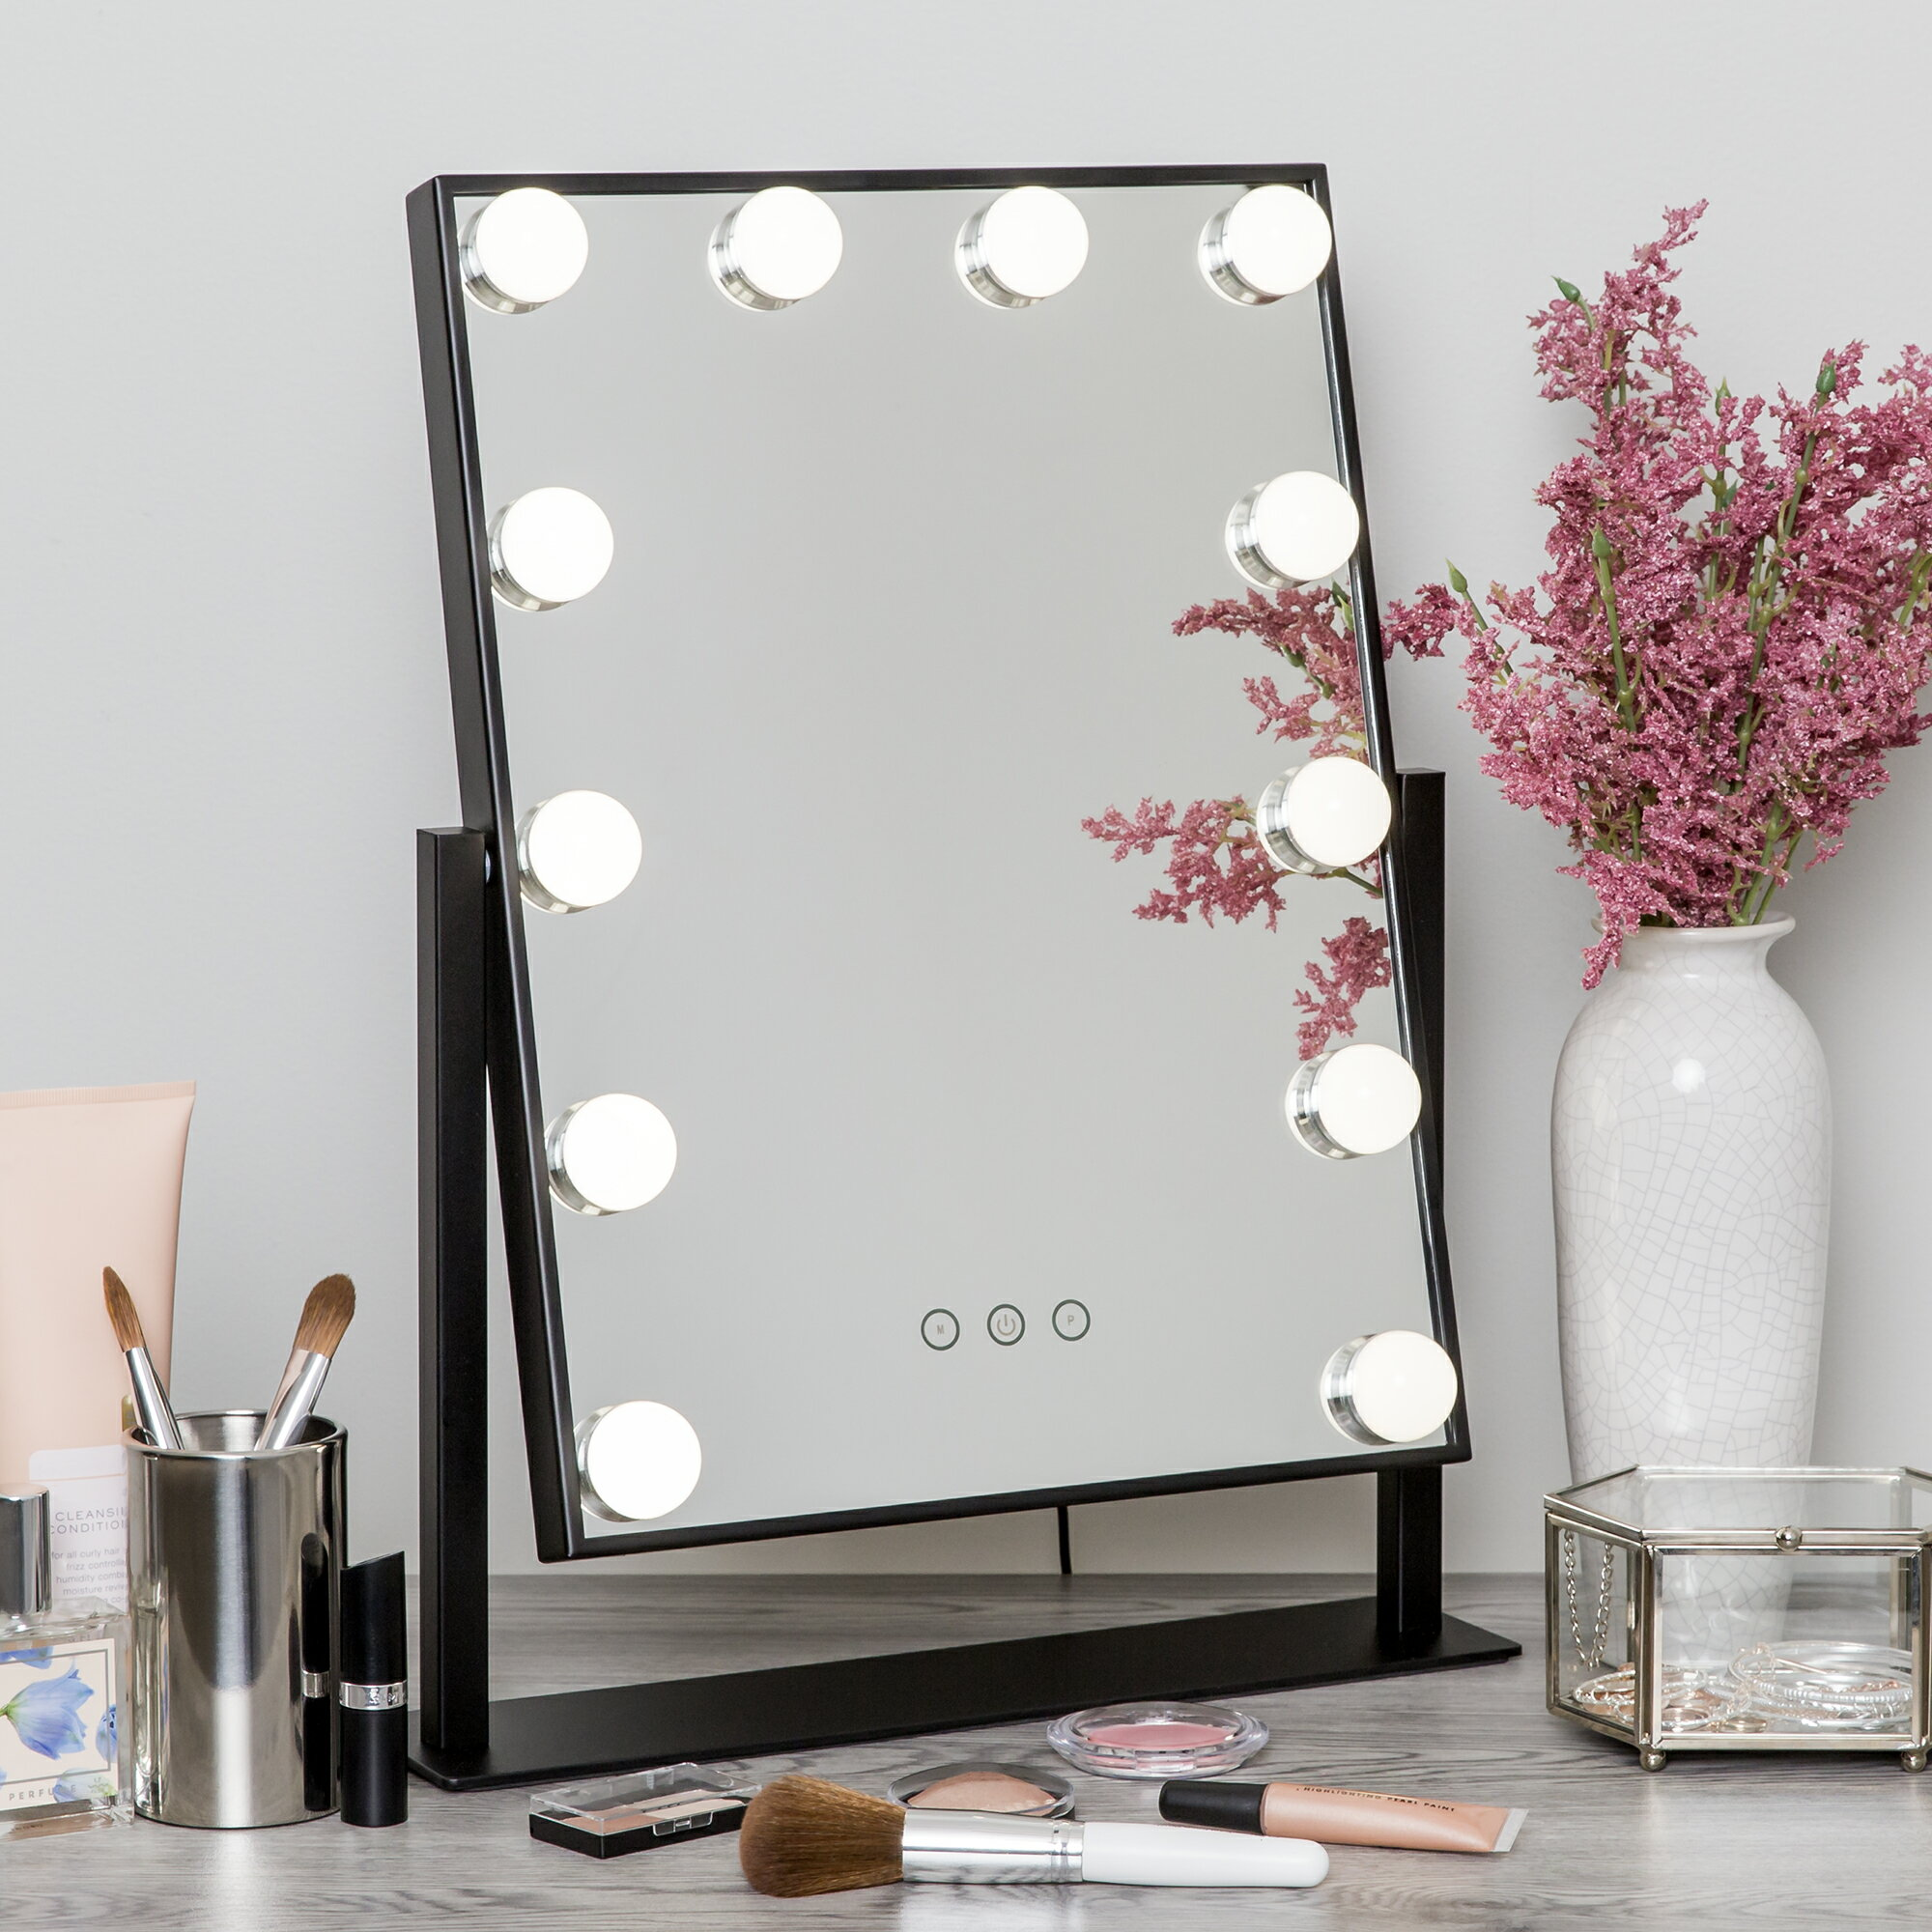 Best Vanity Mirror >> Best Choice Products Smart Touch Lighted Vanity Mirror W 12 Leds Adjustable Brightness And Color Temperature Black